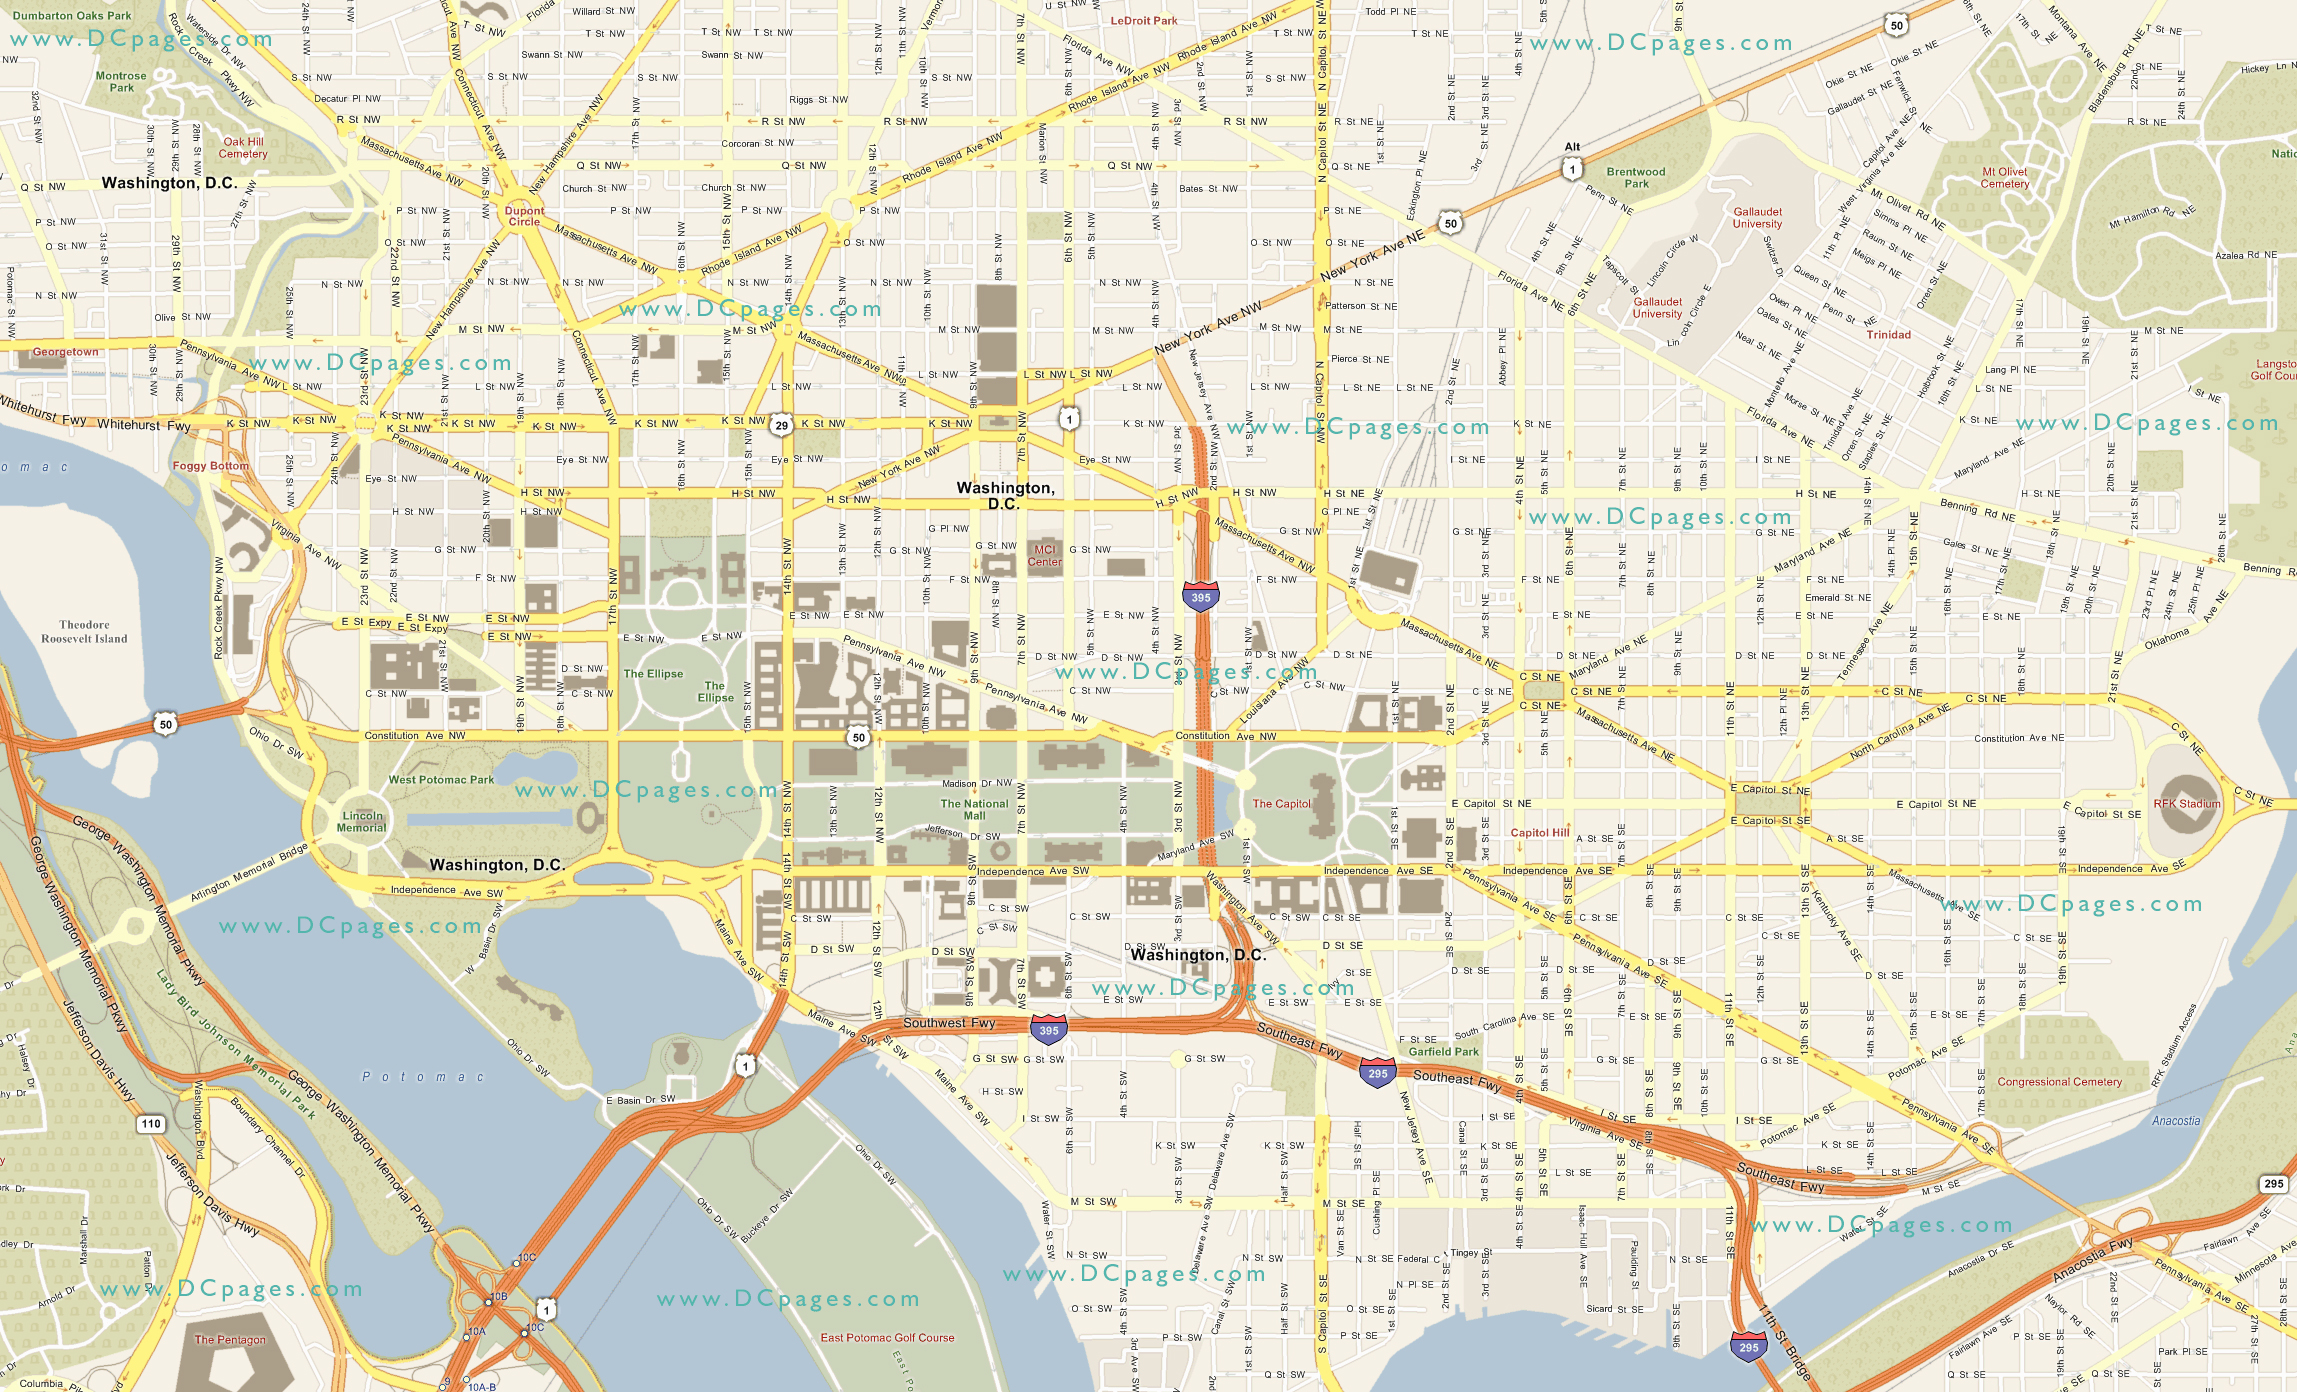 Washington Dc Road Map Washington Dc Map - Washington dc area map pdf